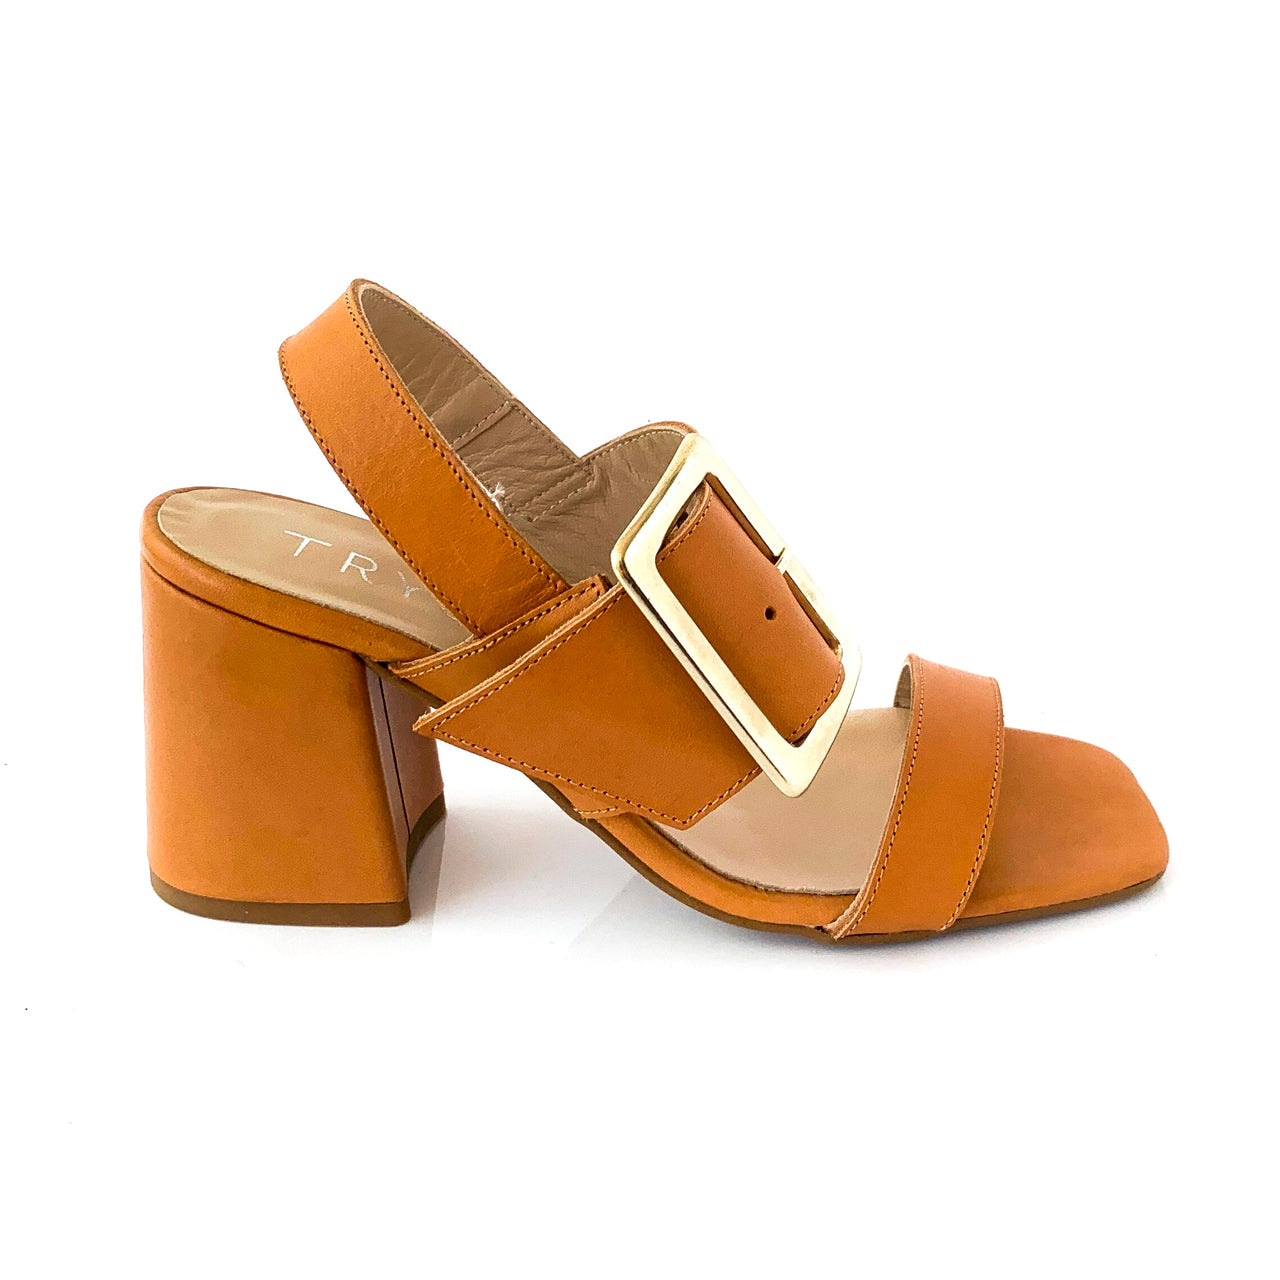 REY | BROWN SANDALS WITH BUCKLE - TrystShoes